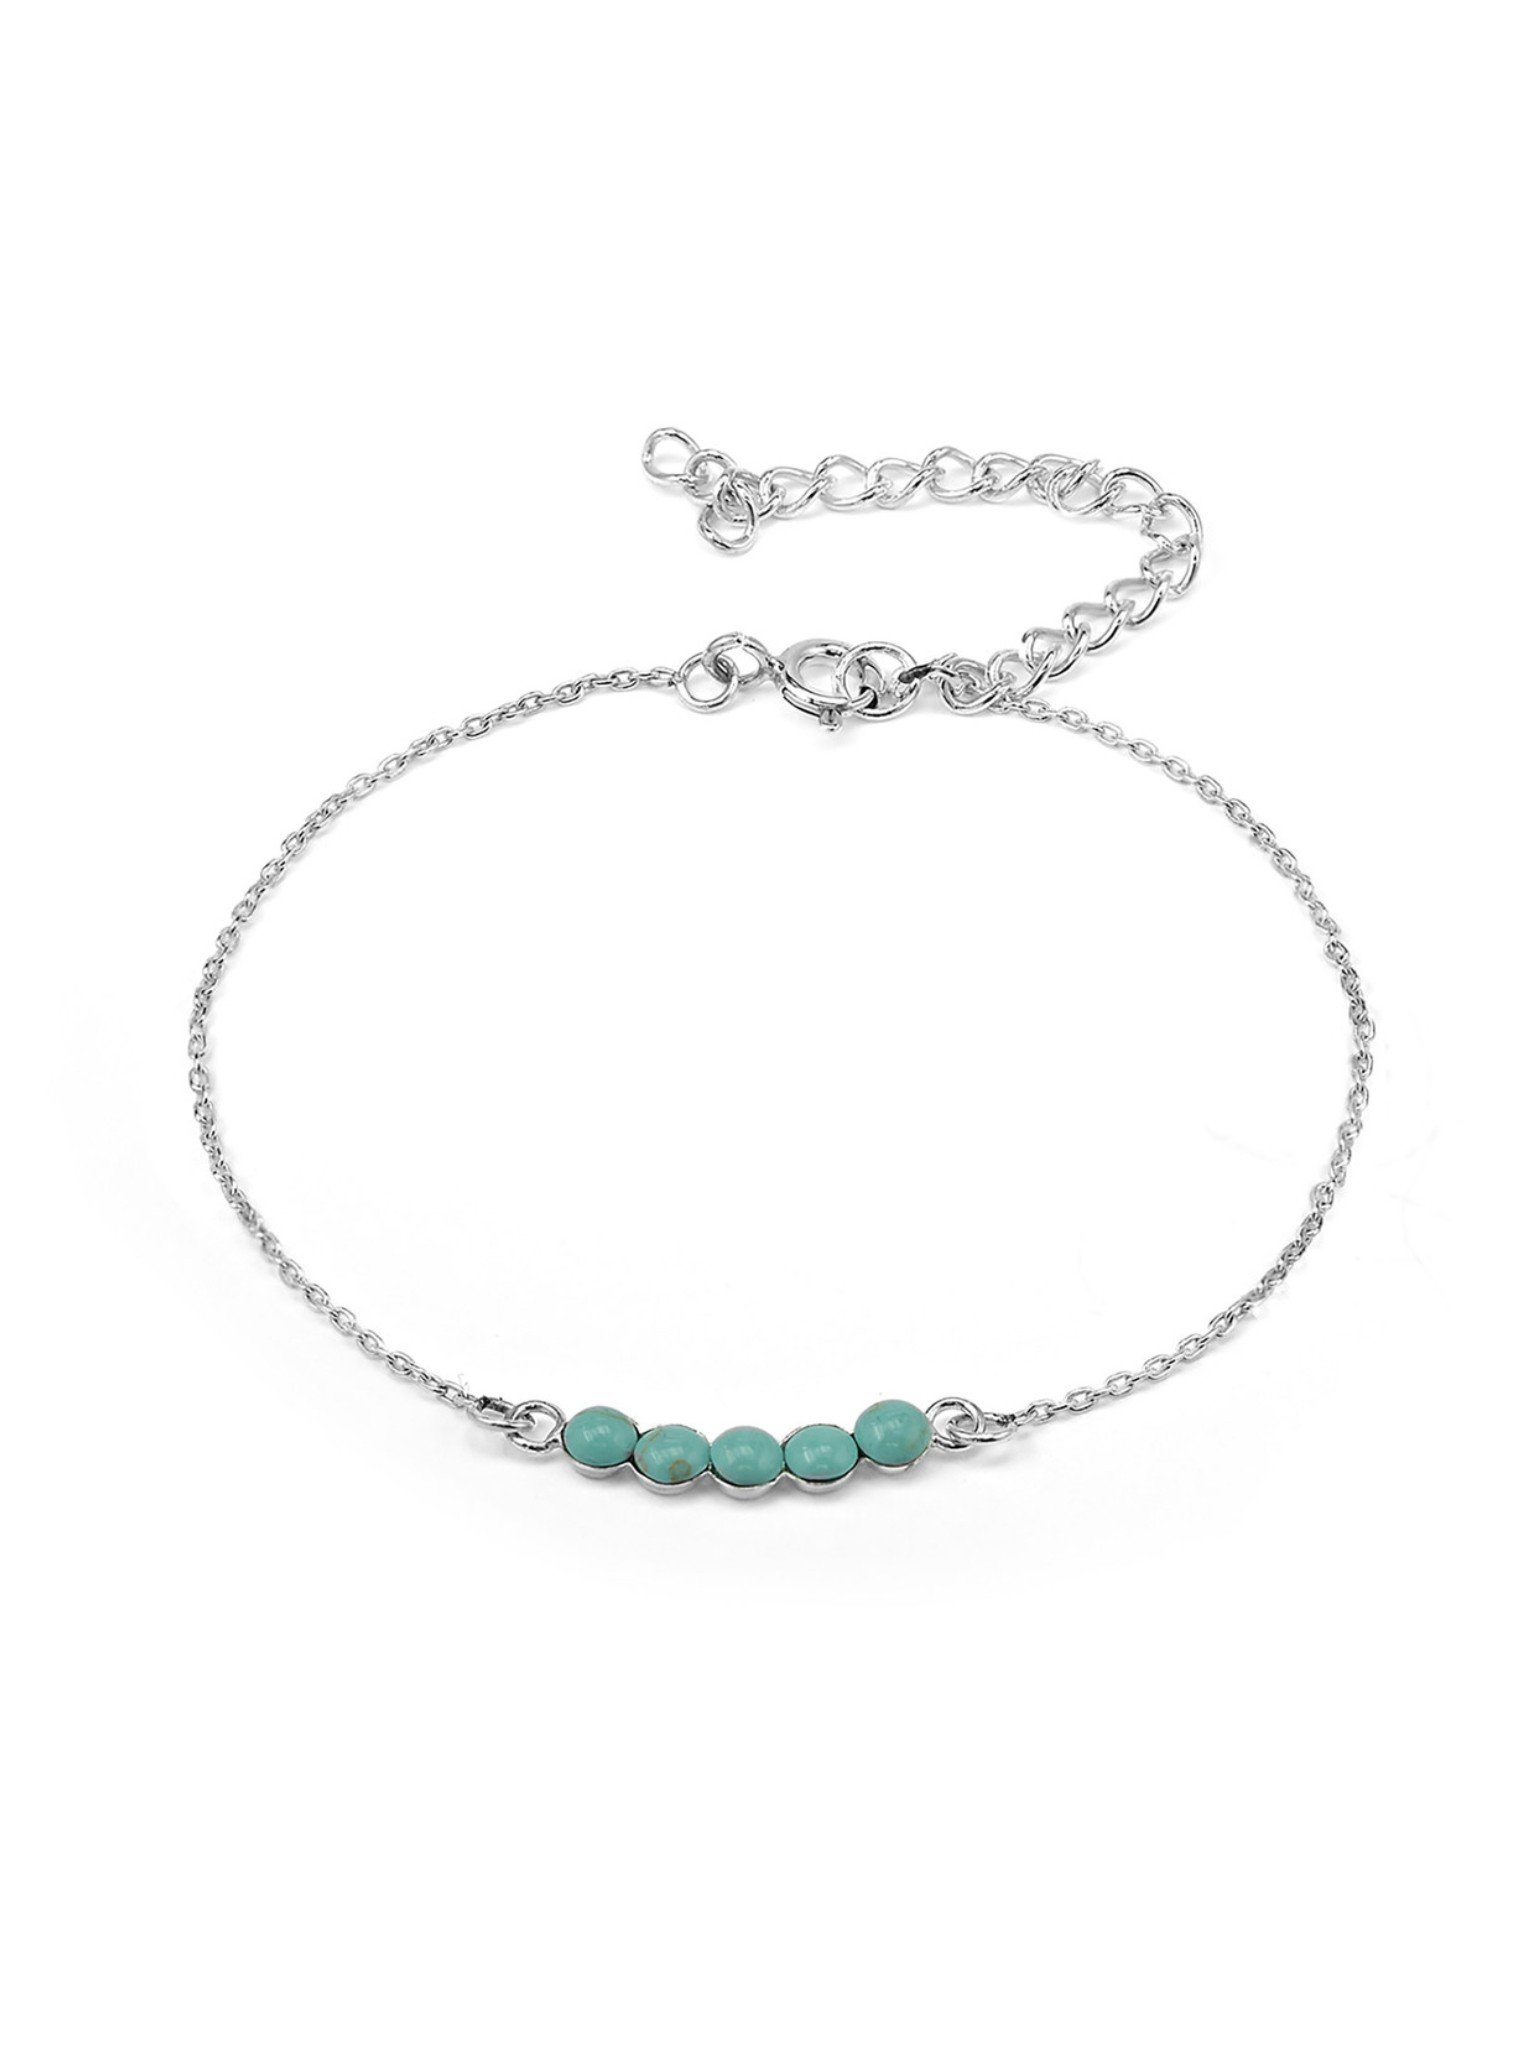 Believe Silver Bracelet with Turqouise